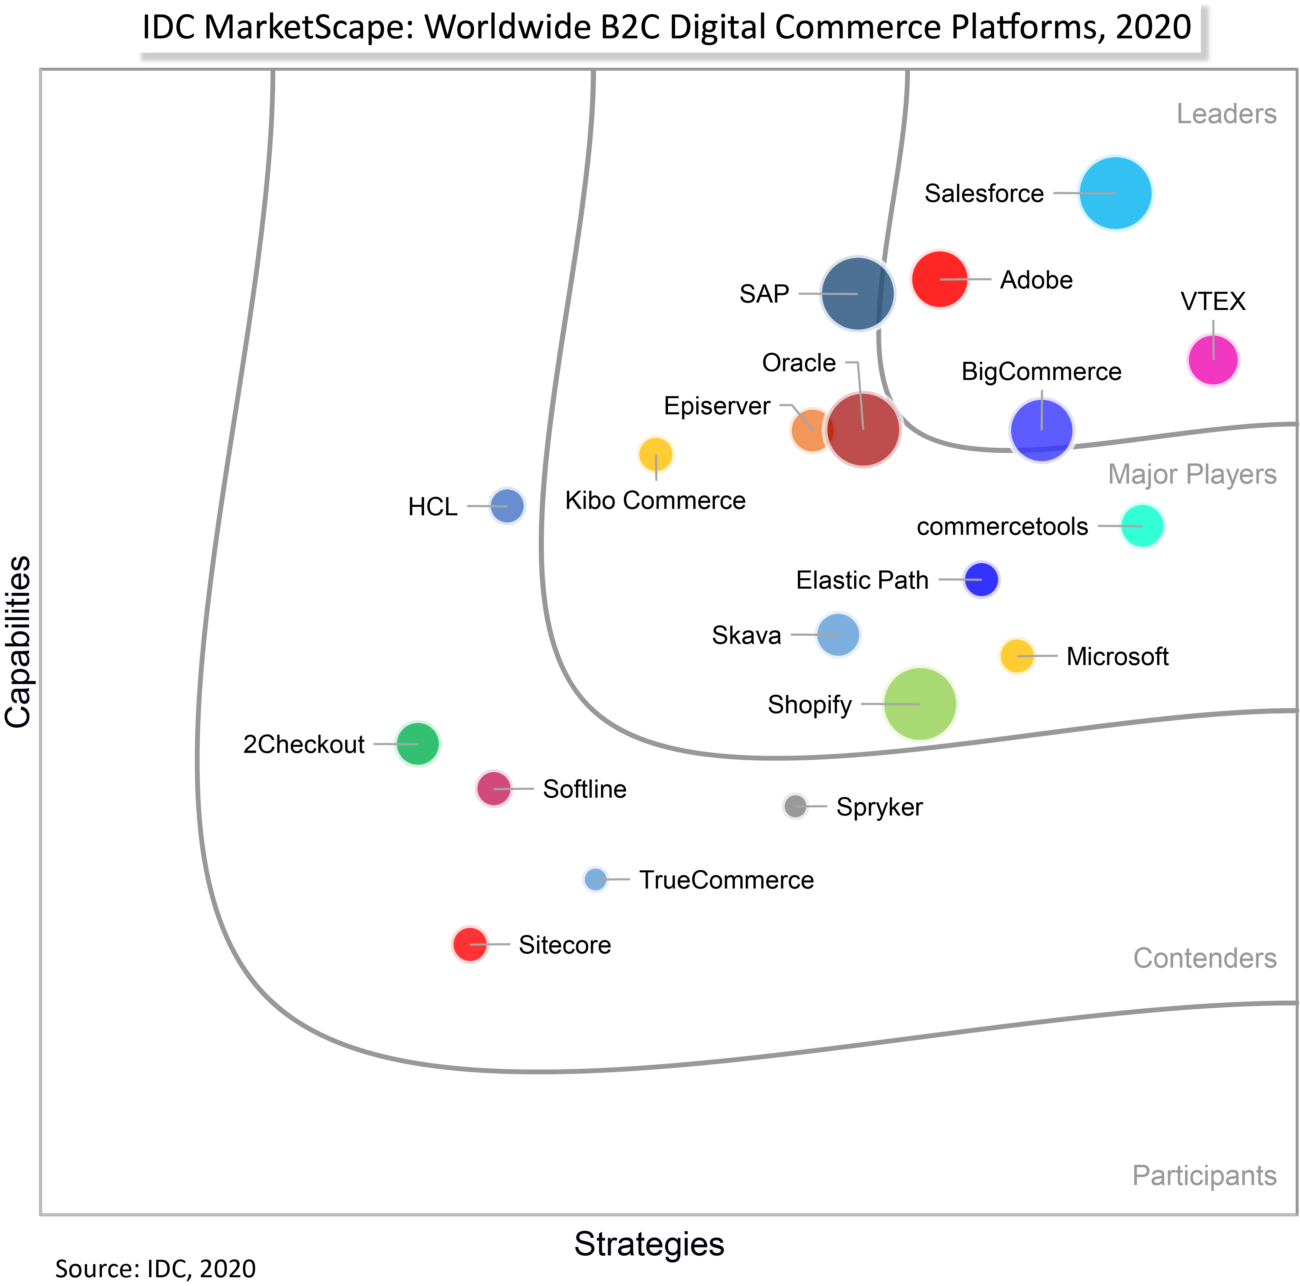 IDC MarketScape 2020